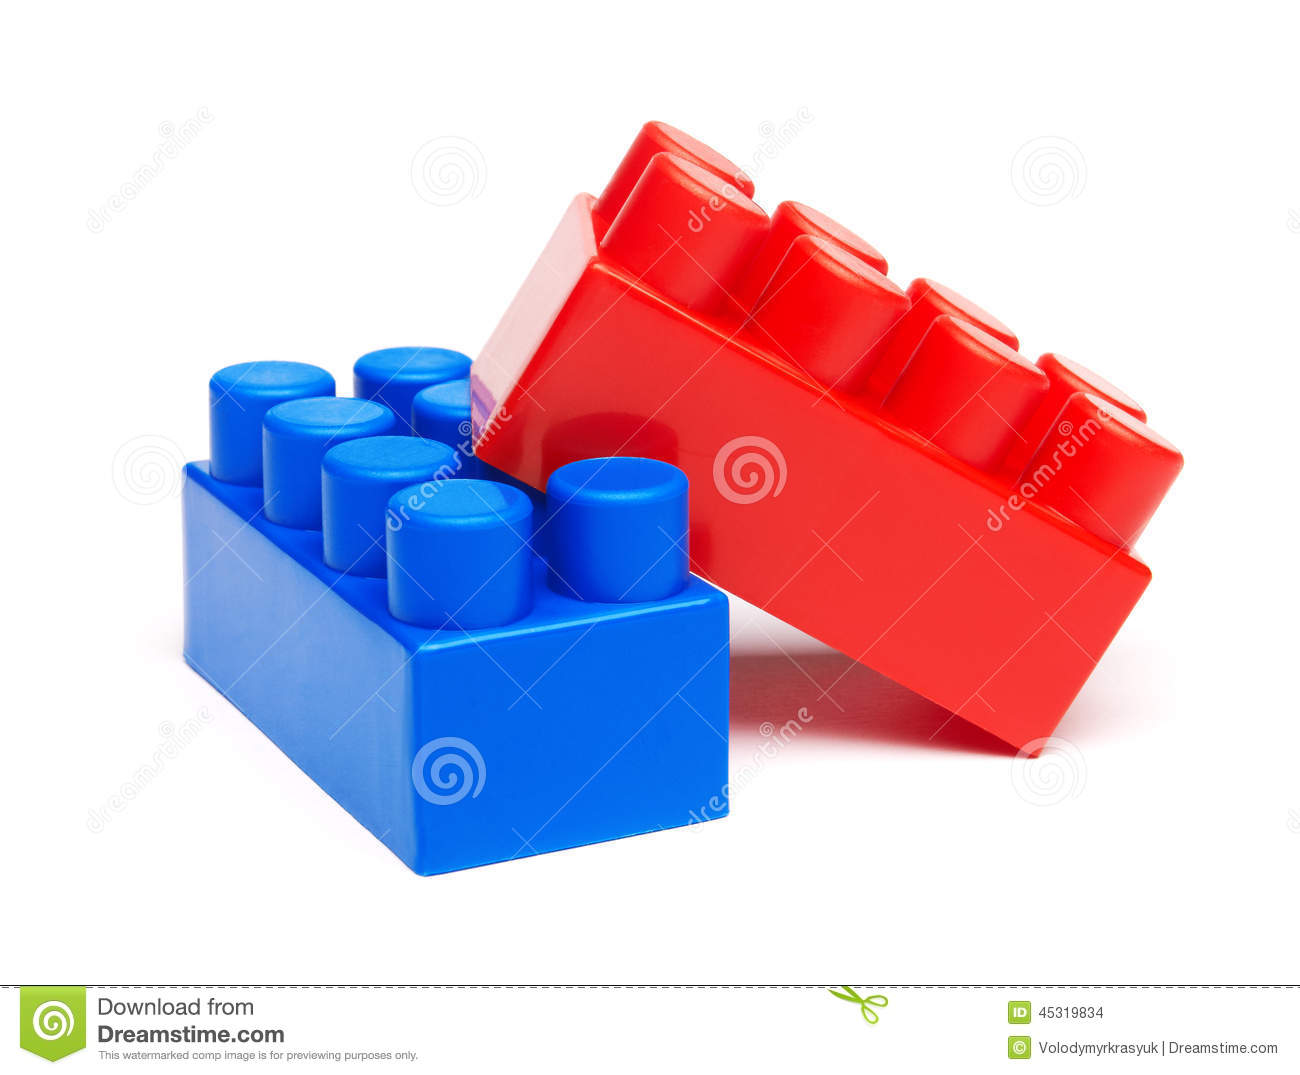 Plastic building blocks stock photo image 45319834 for Plastic building blocks home construction